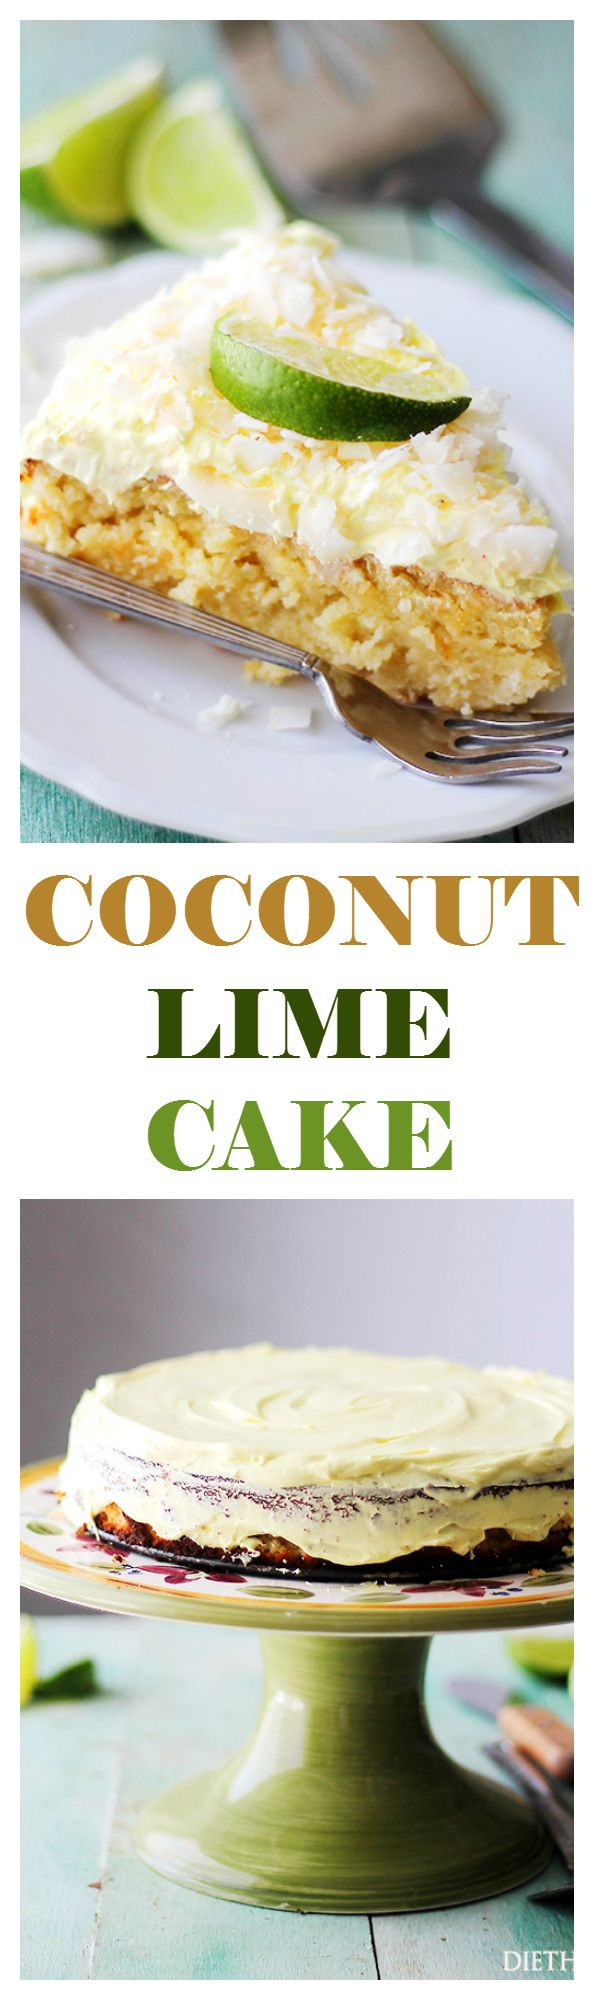 Coconut Lime Ricotta Cake - Bright, light and incredibly delicious Coconut Lime Cake made with ricotta cheese and almonds. Just like that classic Coconut Lime Cake, but better! It's also lower in calories AND gluten free!